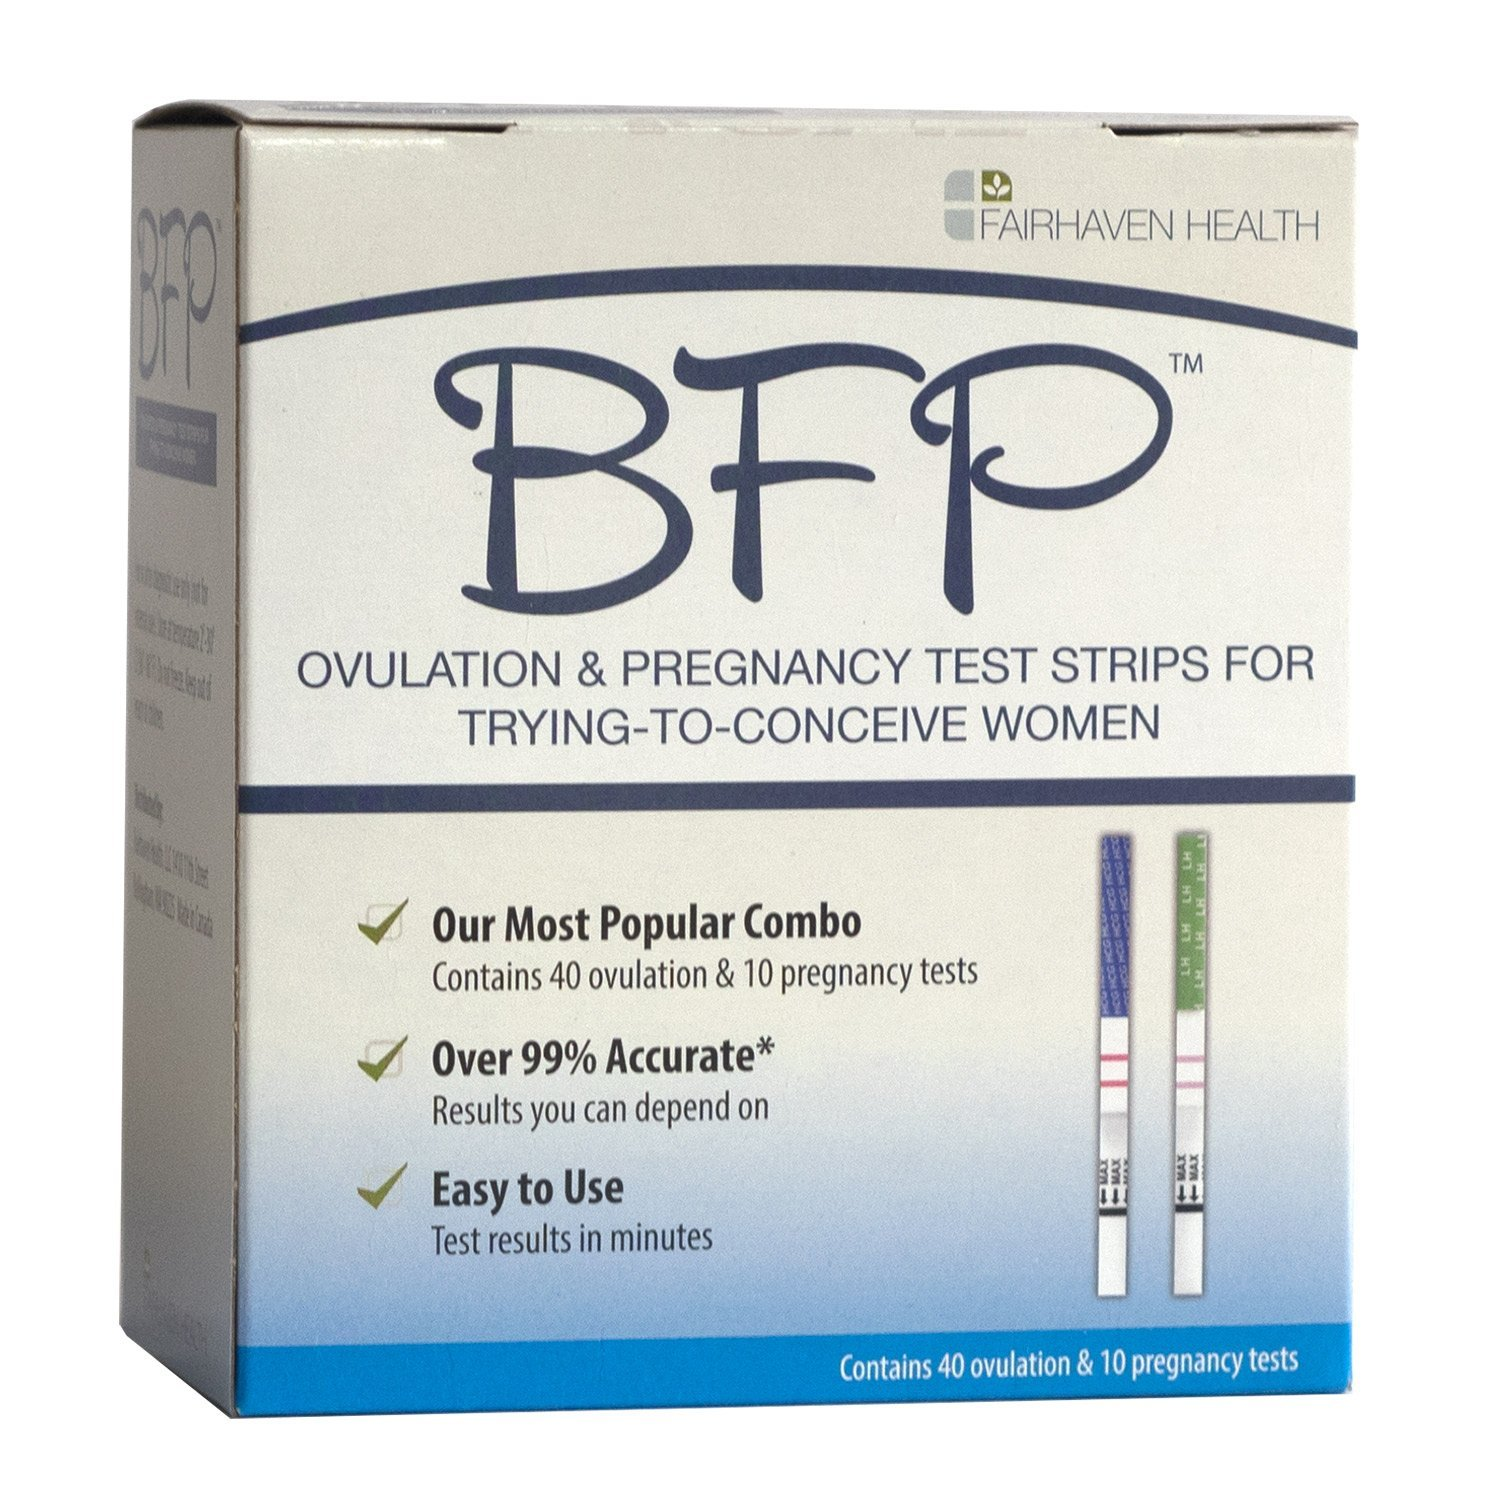 BFP Ovulation & Pregnancy Test Strips, Made in N. America, 40 LH Ovulation & 10 hcg Pregnancy Tests - Early Predictor Kit for Fertility by Fairhaven Health